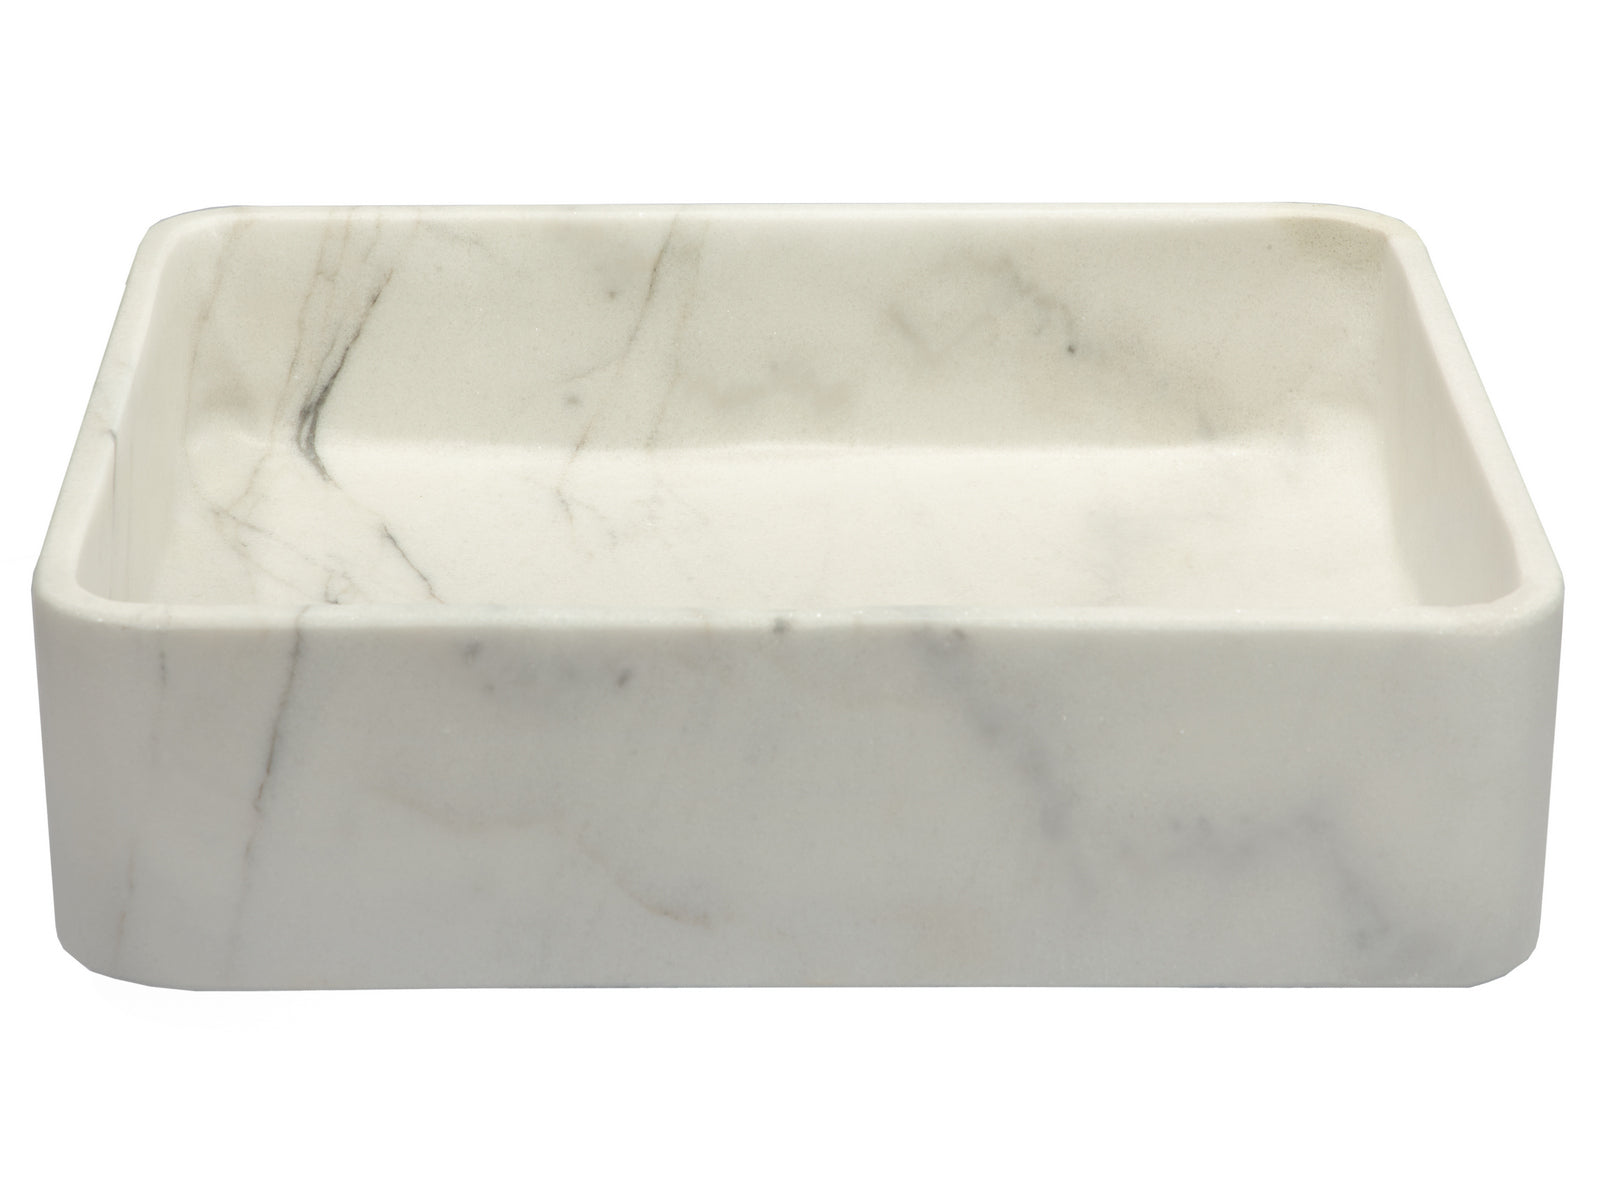 Thin Lip Rectangular Vessel Sink in Guanxi White Marble